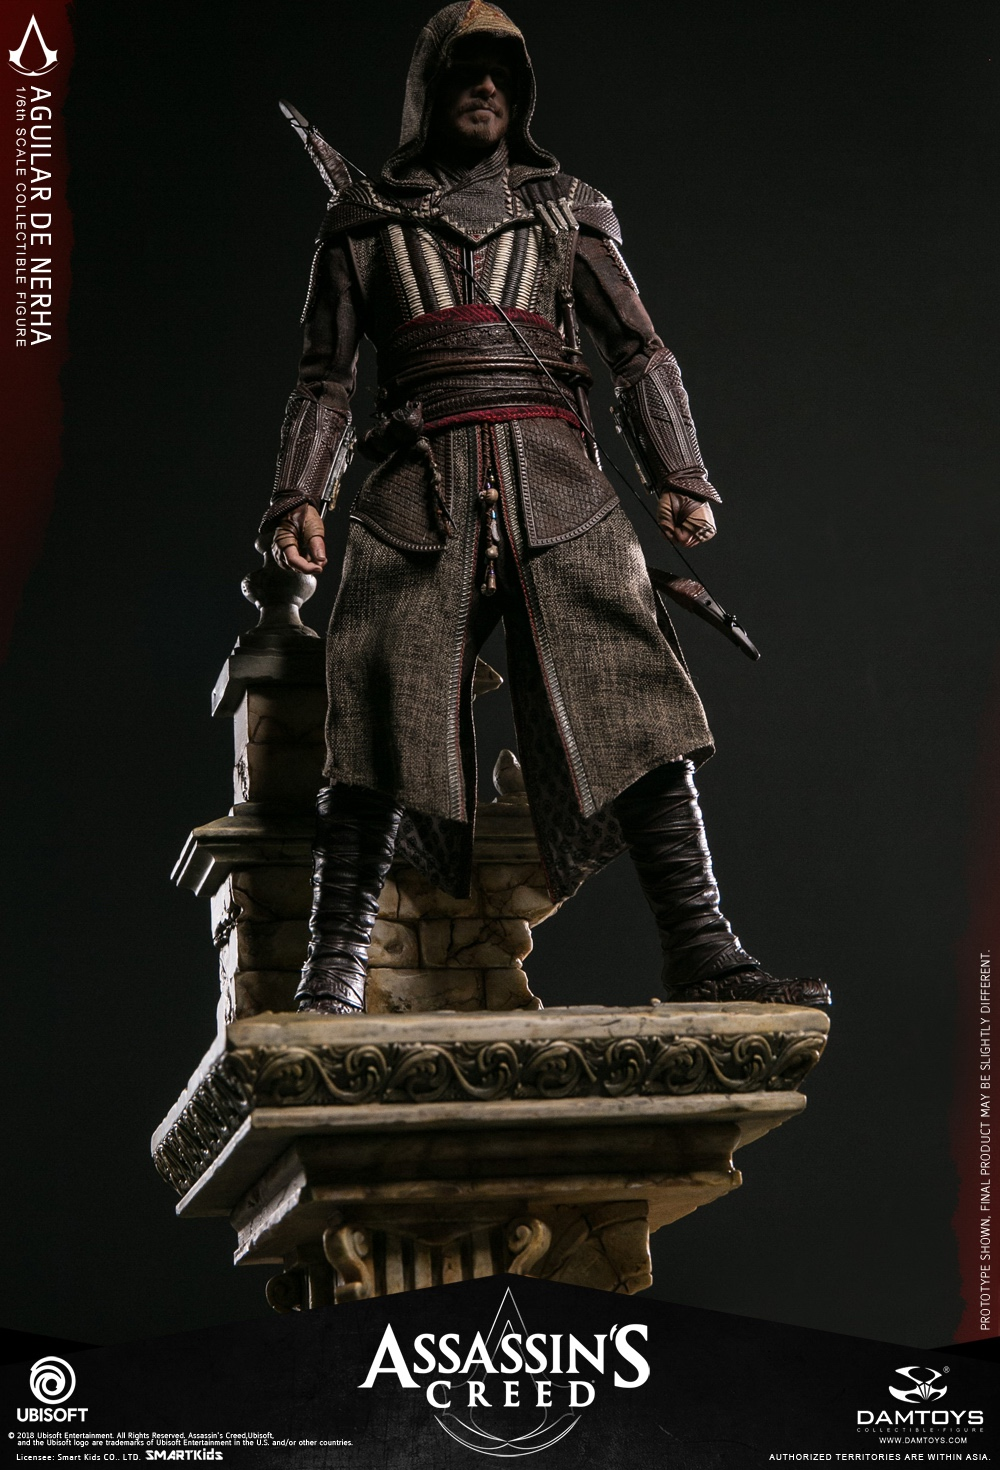 NEW PRODUCT: Damtoys–Assassin's Creed –1/6th scale Aguilar Collectible Figure Specifications 130157z6m888cvzcb8bjid